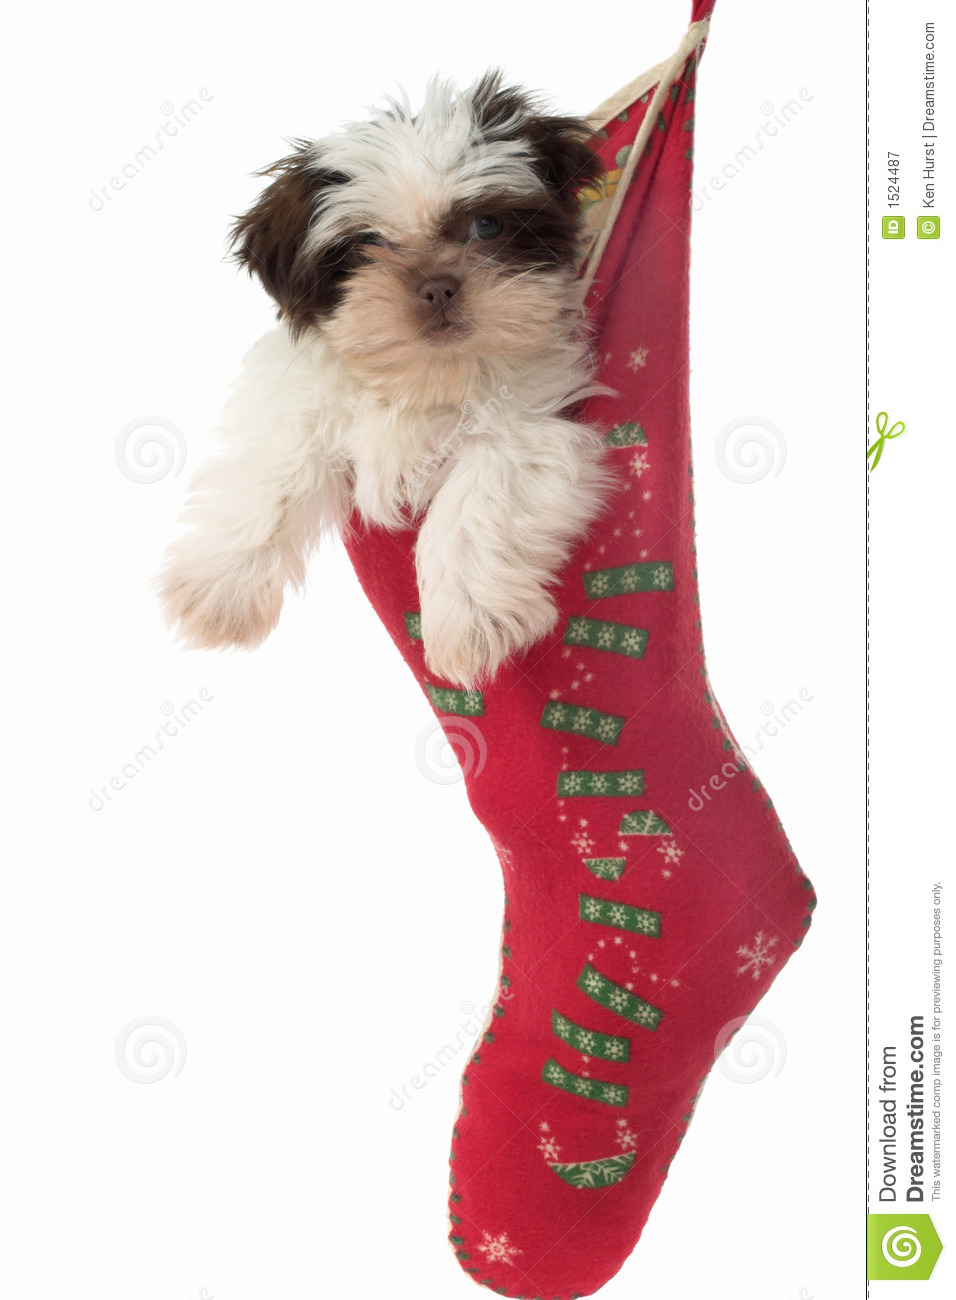 Christmas Stocking Dog